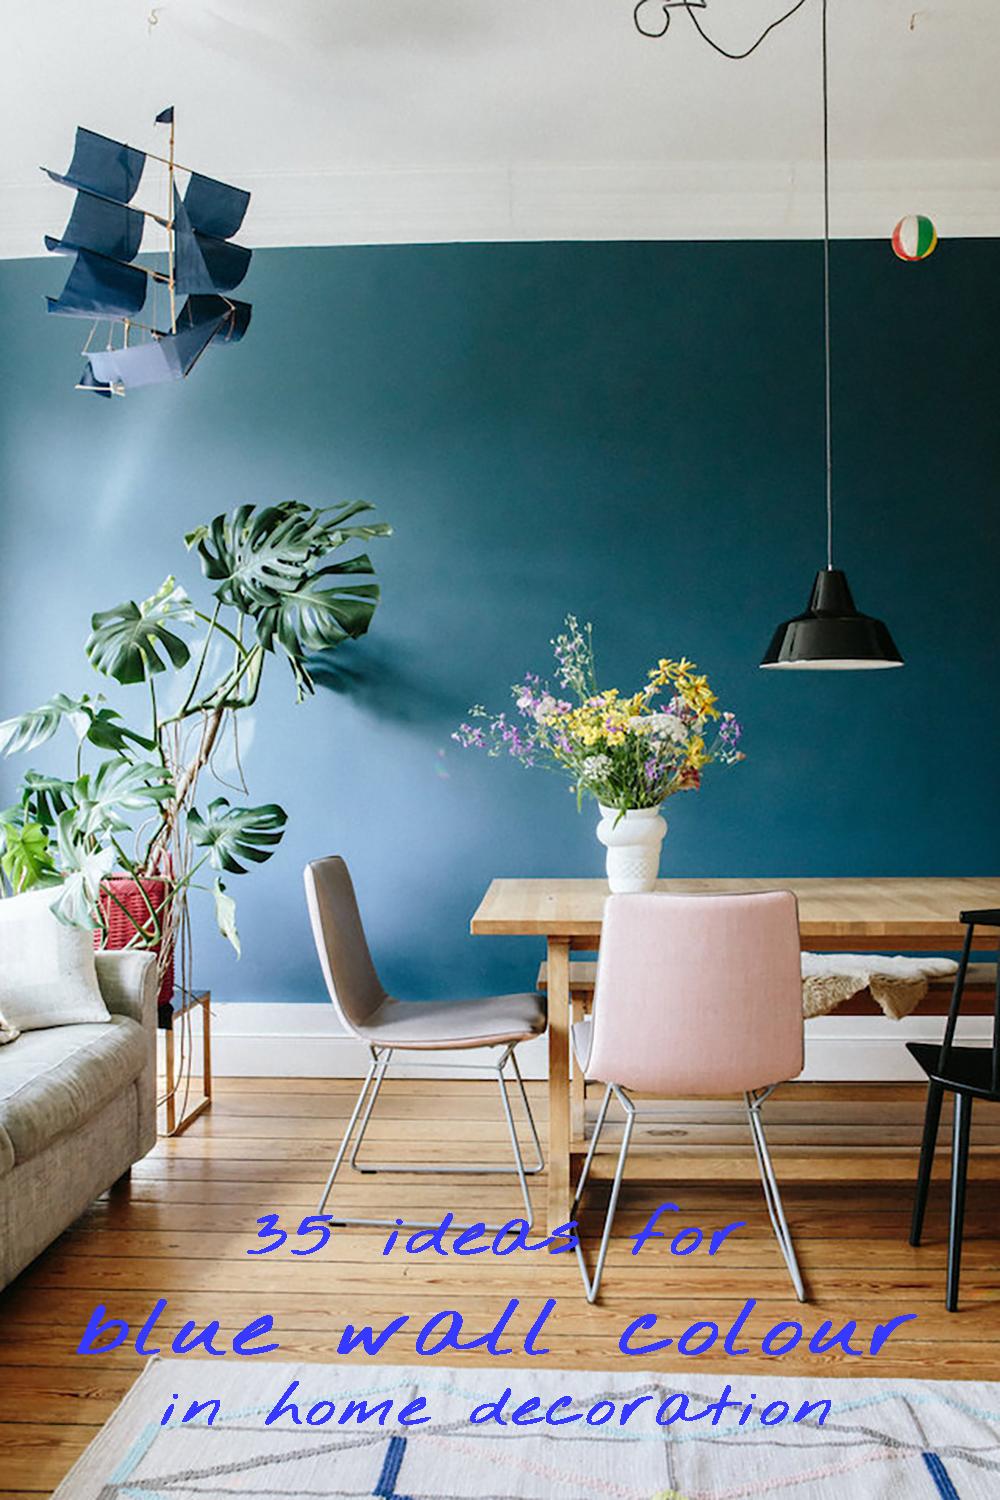 35 Ideas For Blue Wall Colour In Home Decoration | Alizu0027s Wonderland